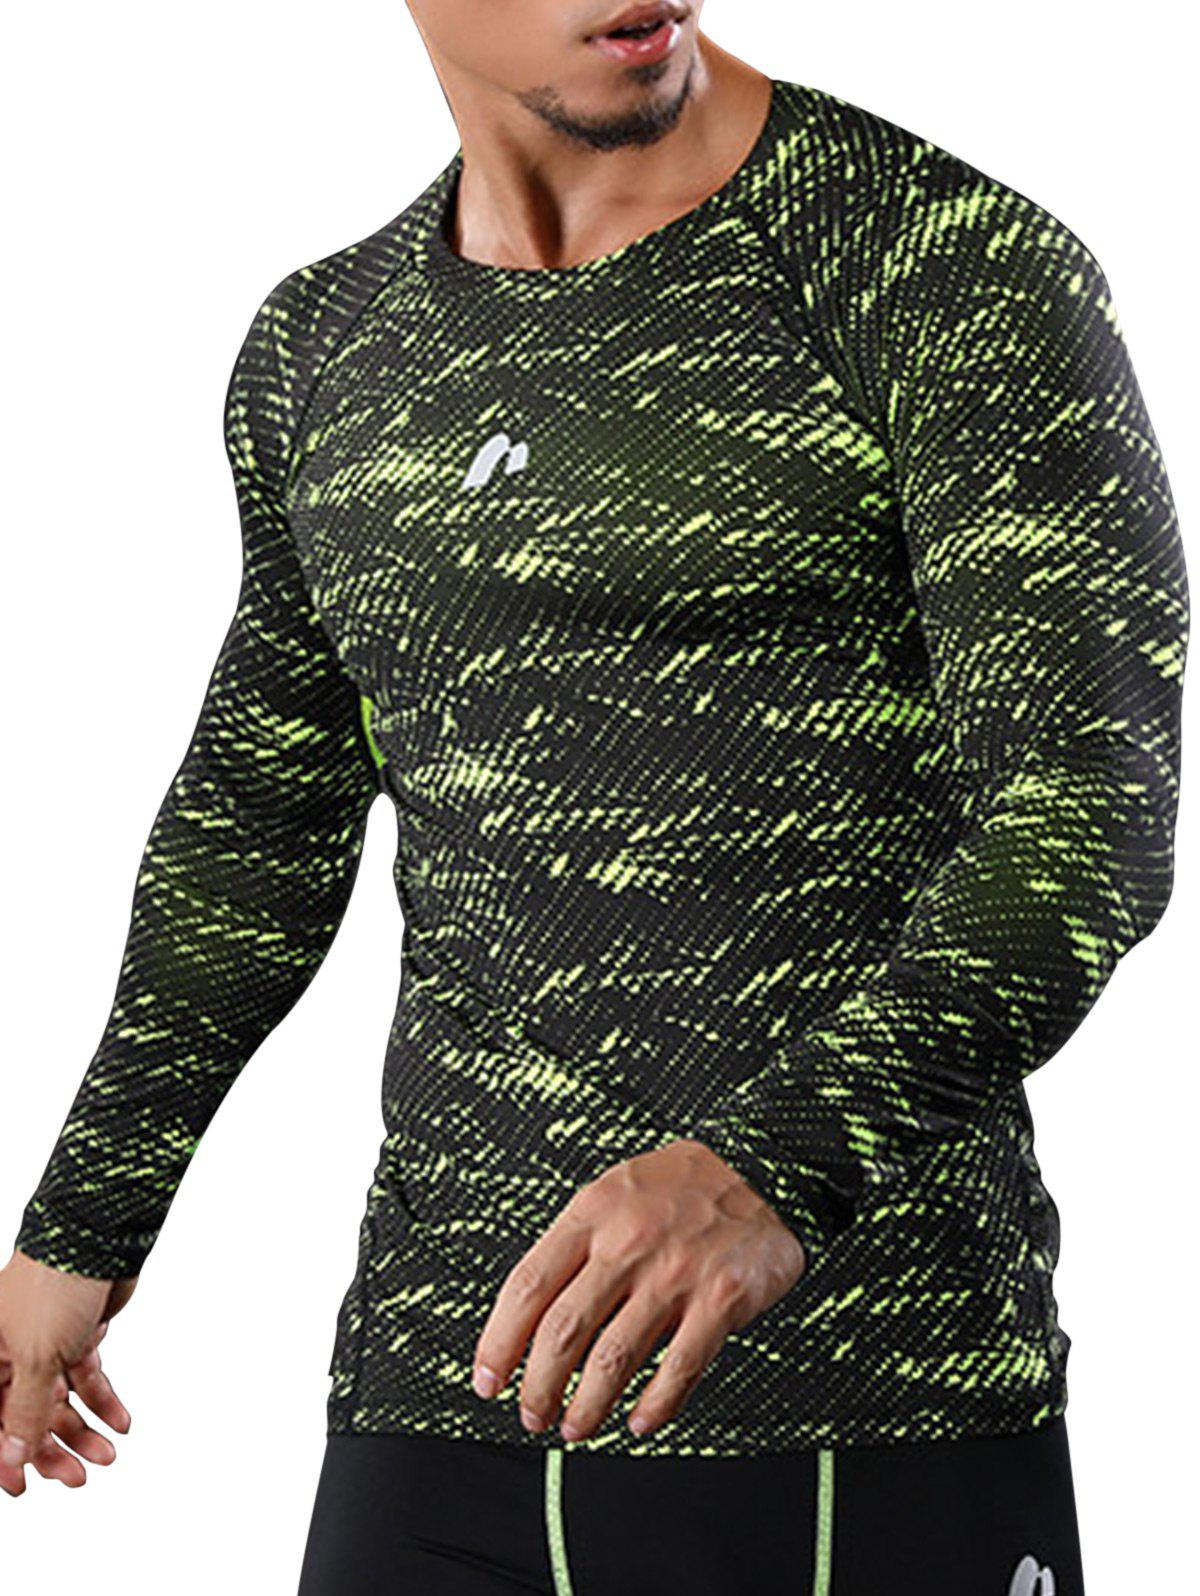 Quick Dry Camouflage Openwork Panel Gym T-shirt quick